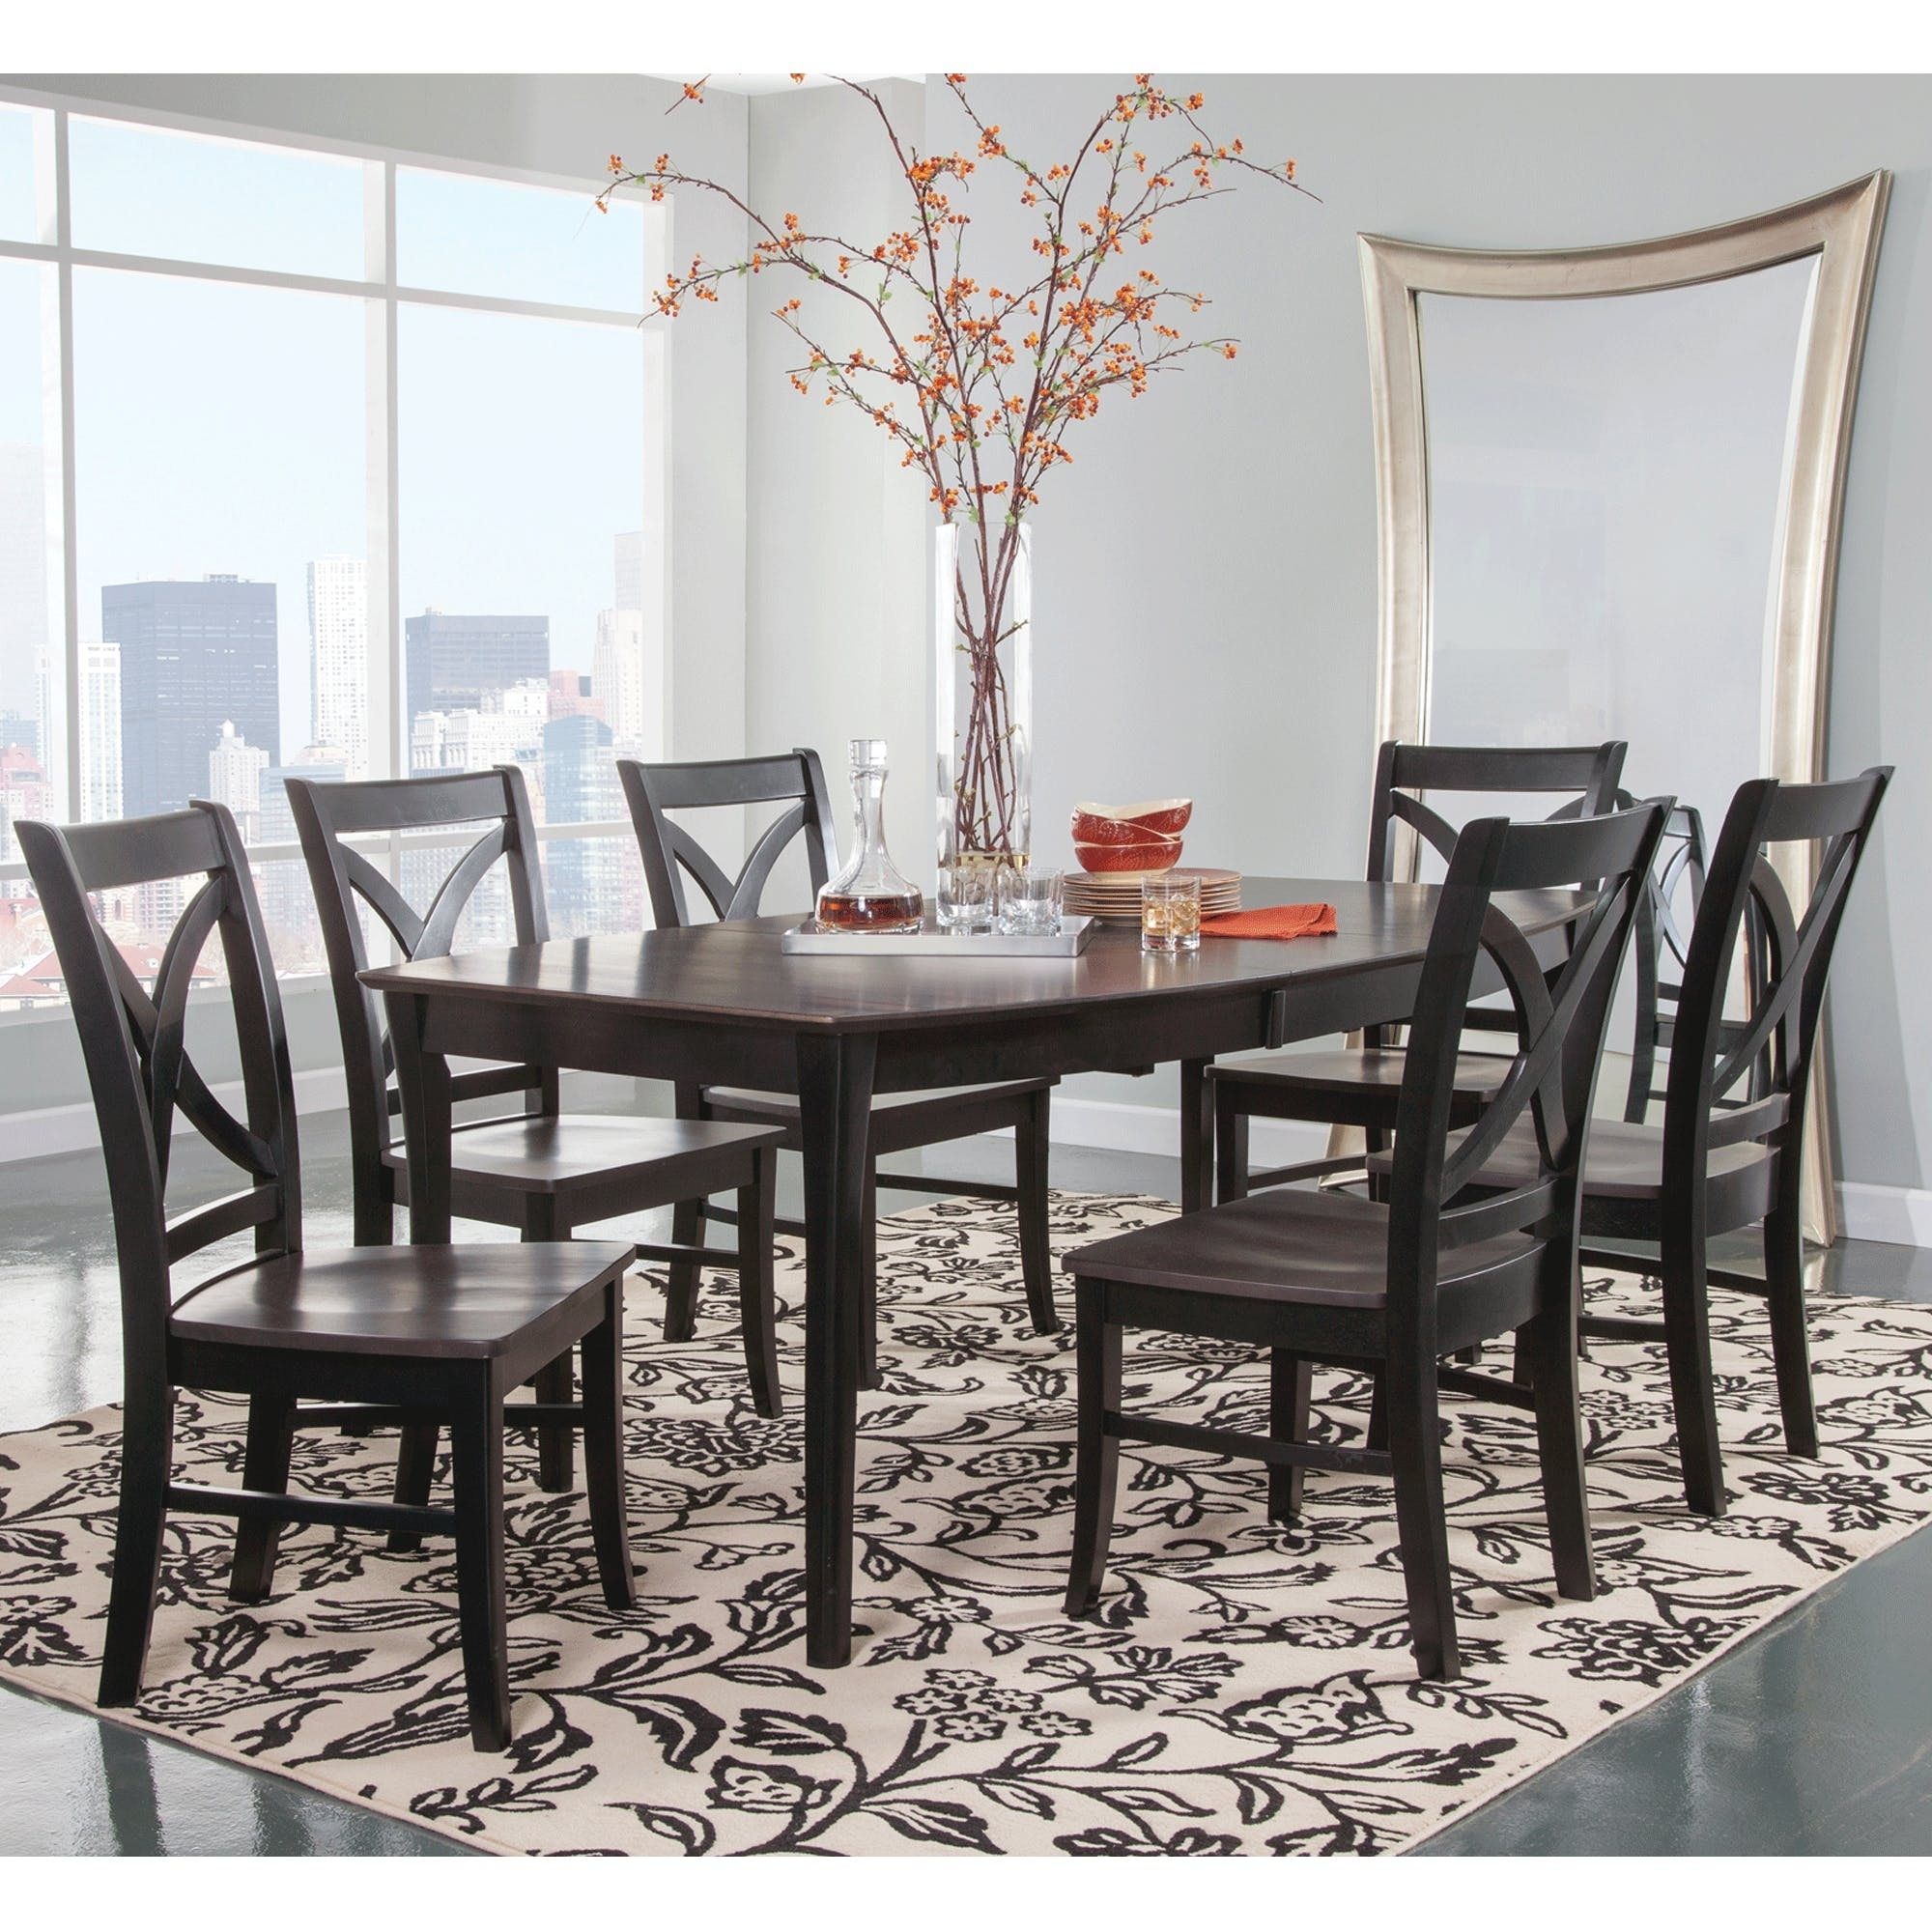 Cosmopolitan Coal/black Dining Room 7 Piece Set – Butterfly Leaf Leg Throughout Most Recently Released Craftsman 7 Piece Rectangle Extension Dining Sets With Side Chairs (Image 9 of 20)